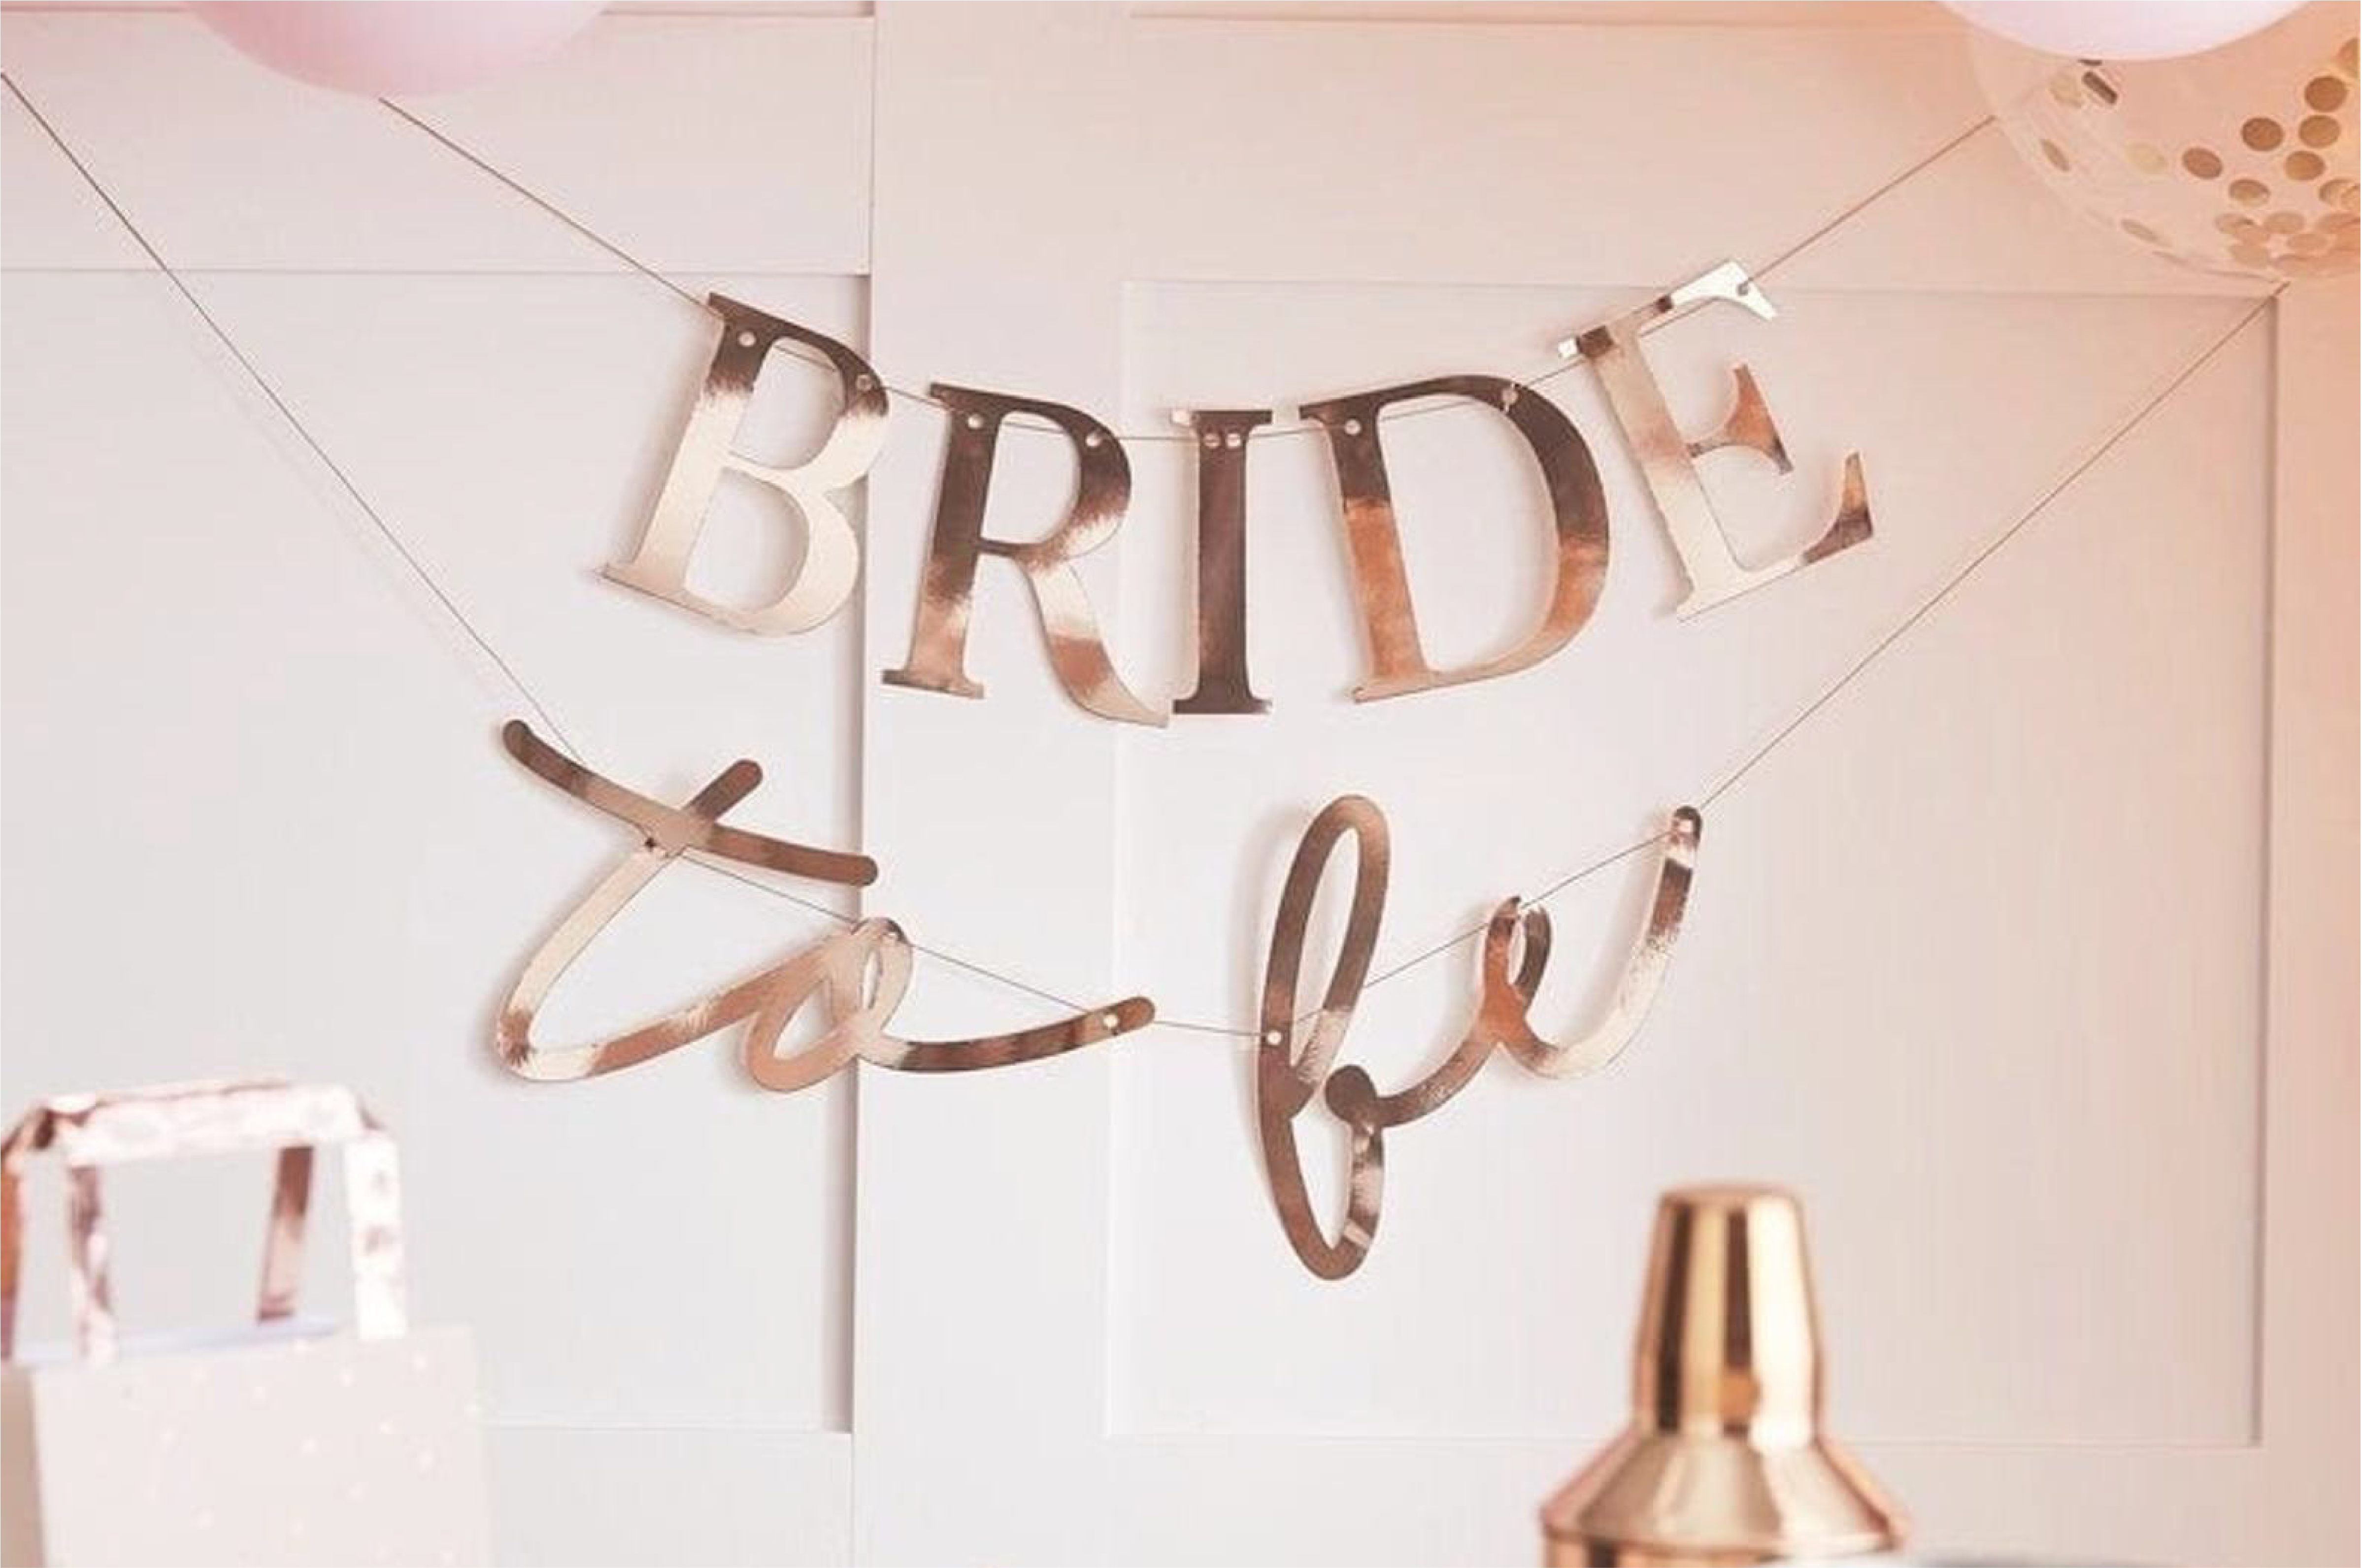 Bride-to-be sign on the wall